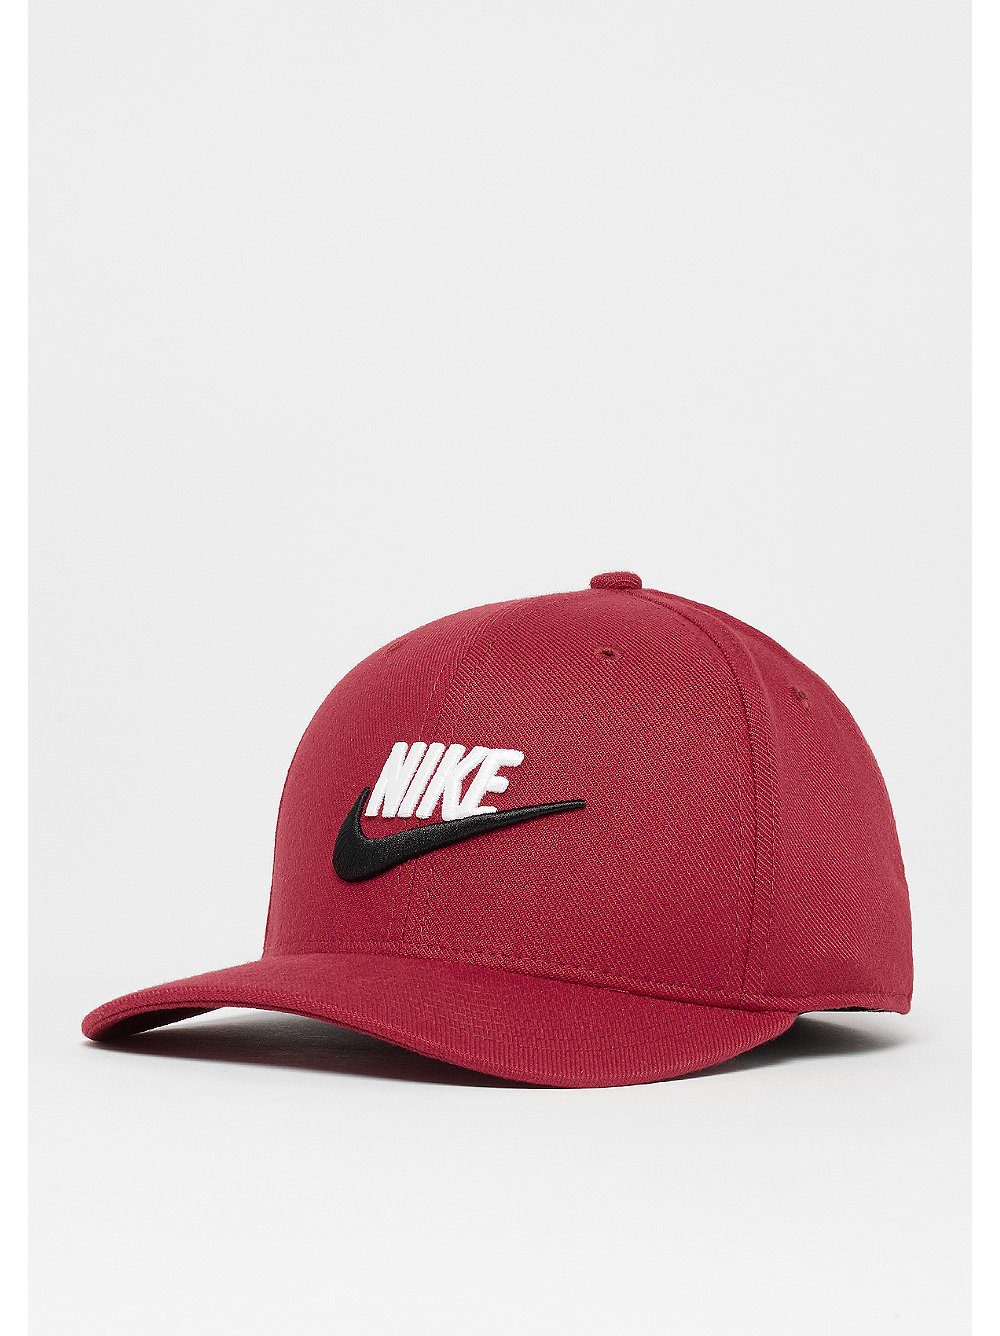 1608401cd66e3 Compra NIKE NSW CLC99 SWFLX red crush black white Gorras de Baseball en  SNIPES